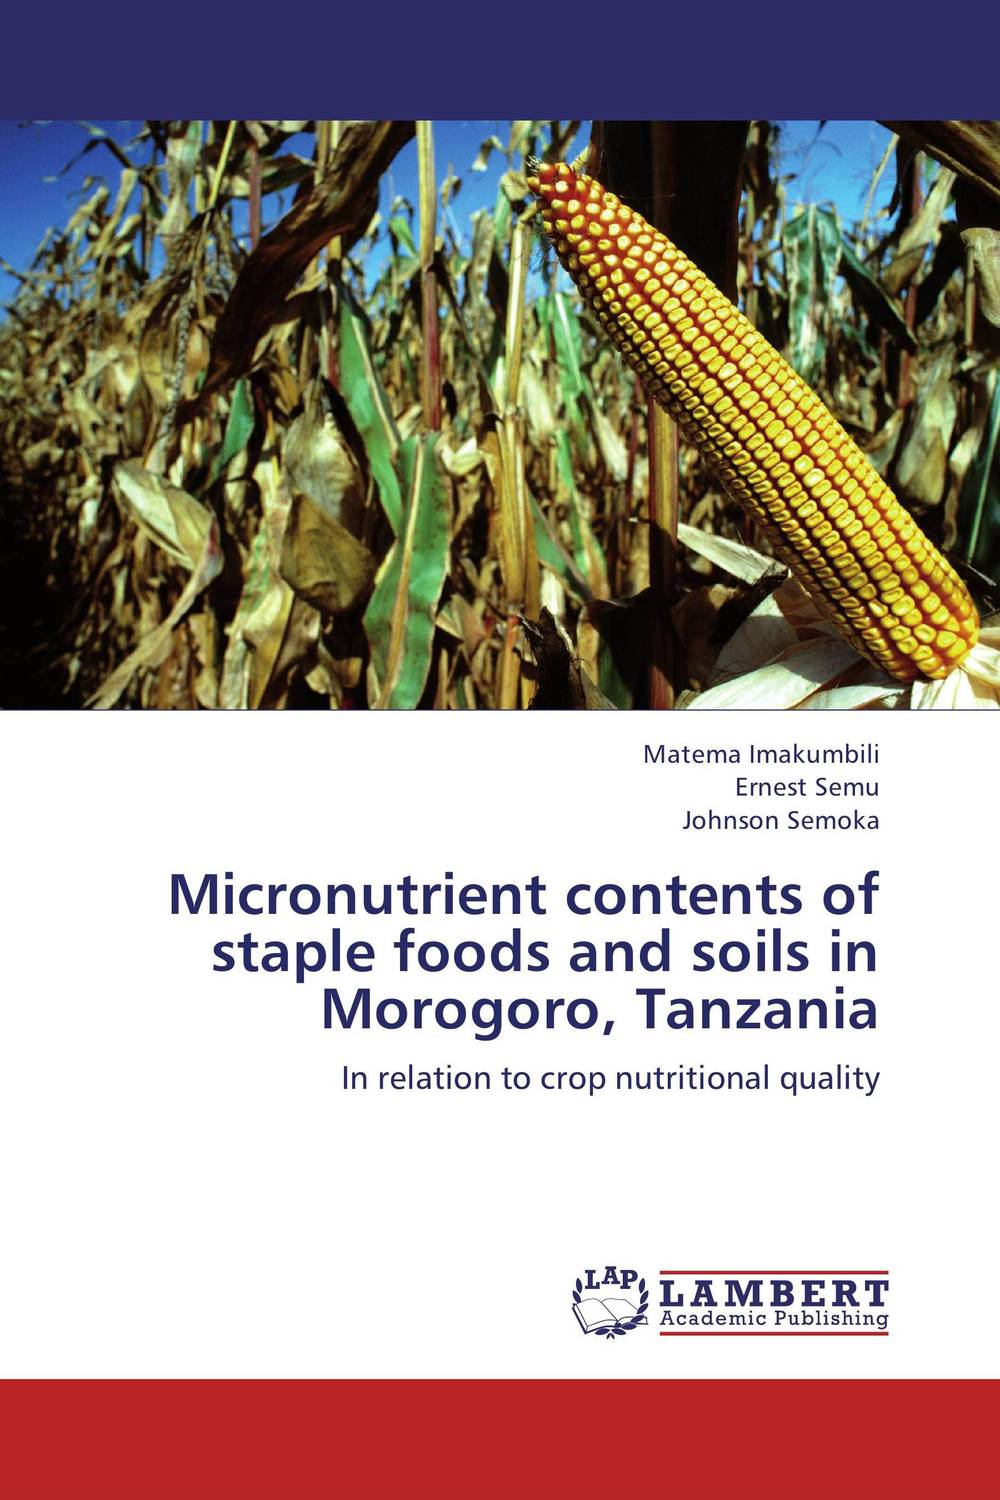 Micronutrient contents of staple foods and soils in Morogoro, Tanzania phosphorus sorption chractersitics of some soils of southern ethiopia